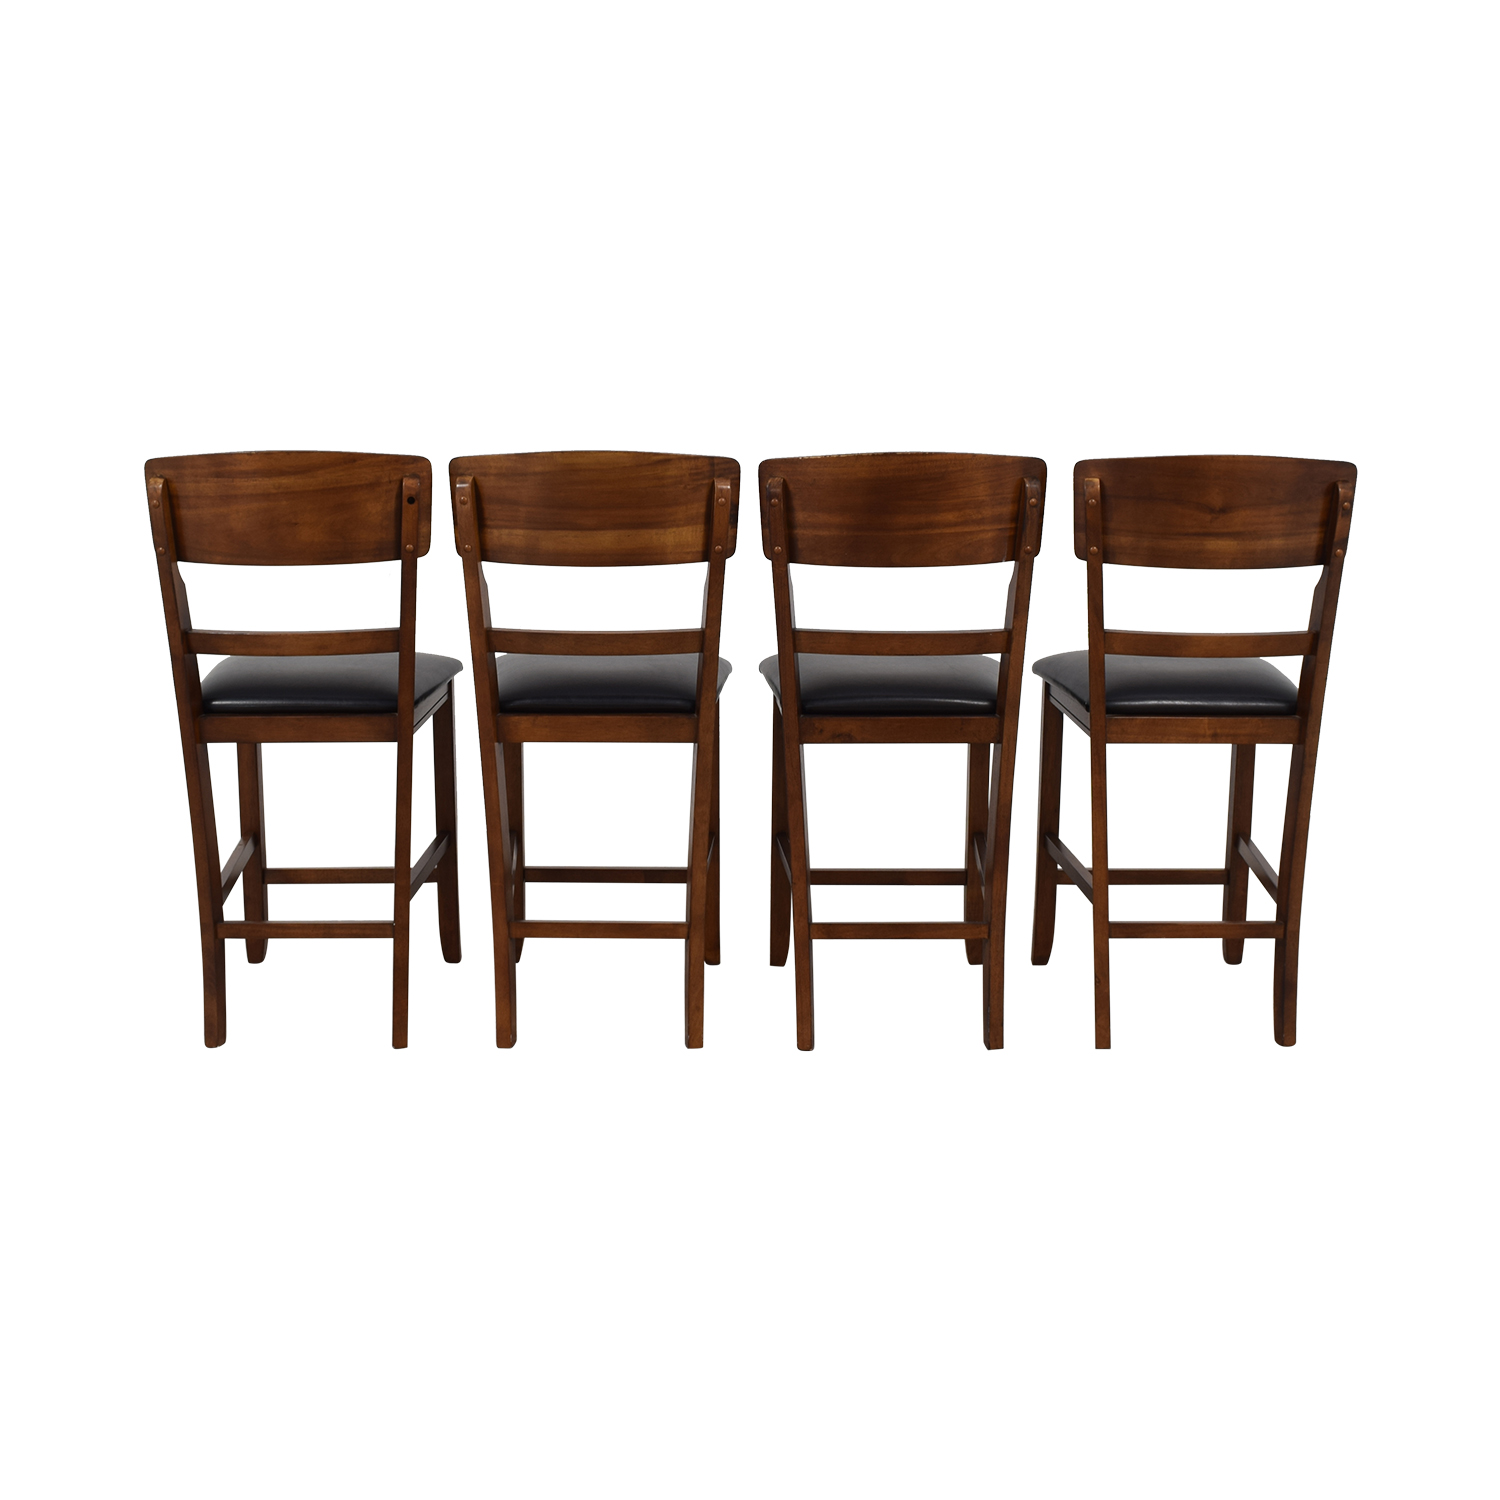 Living Spaces Living Spaces Counter Stools dimensions